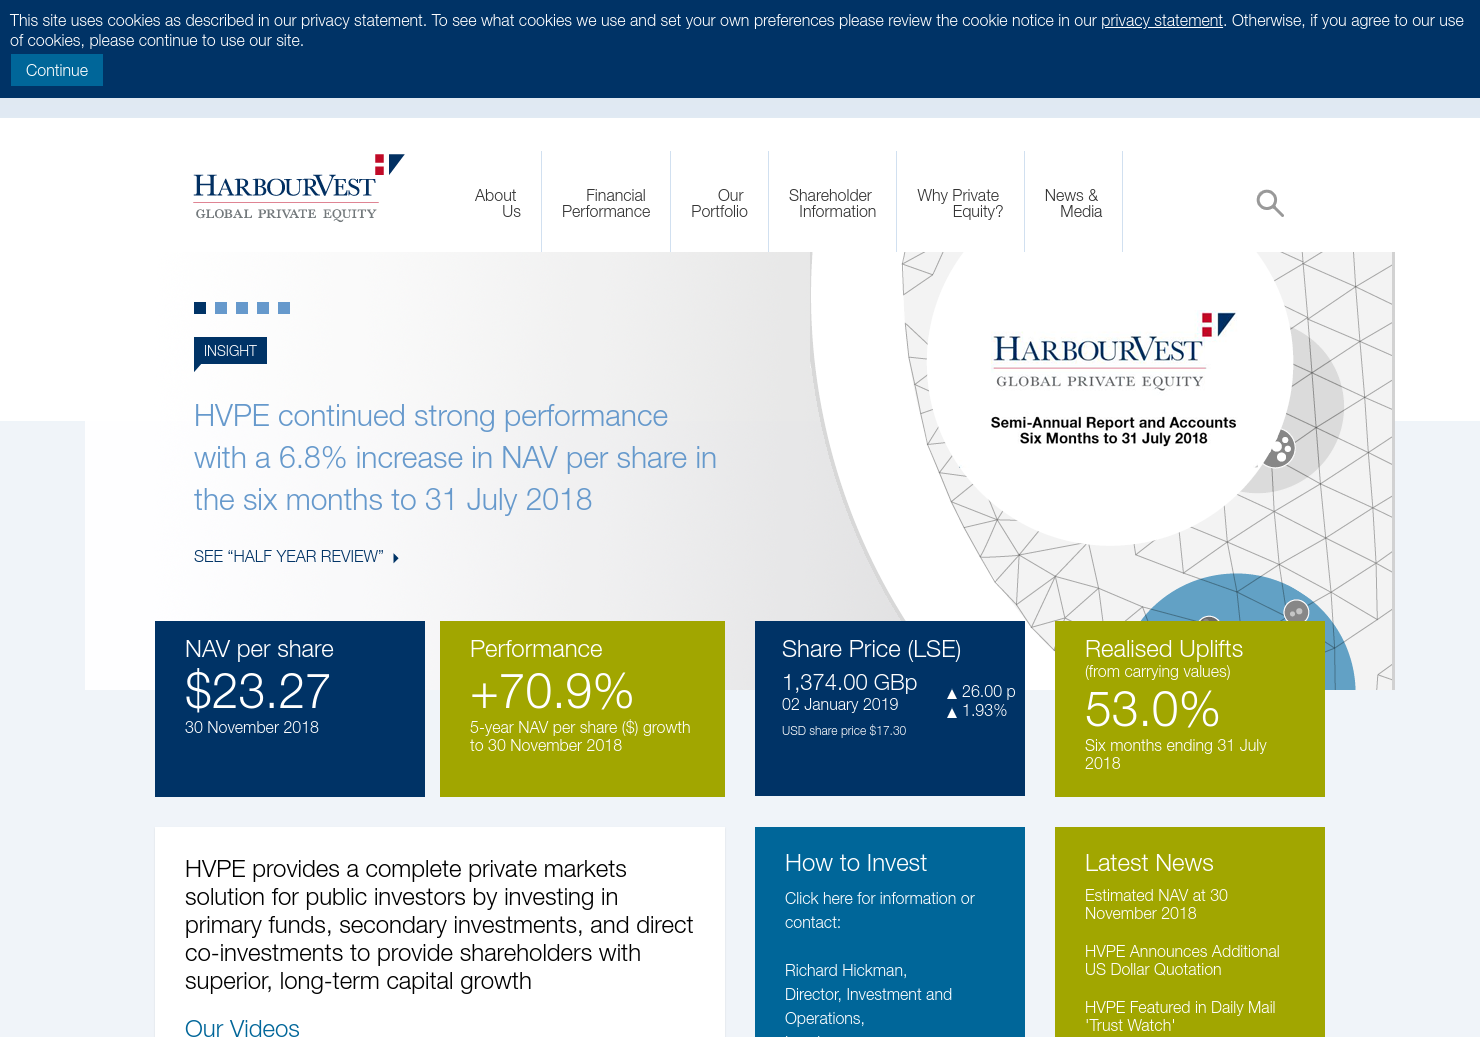 HarbourVest Private Equity Home Page